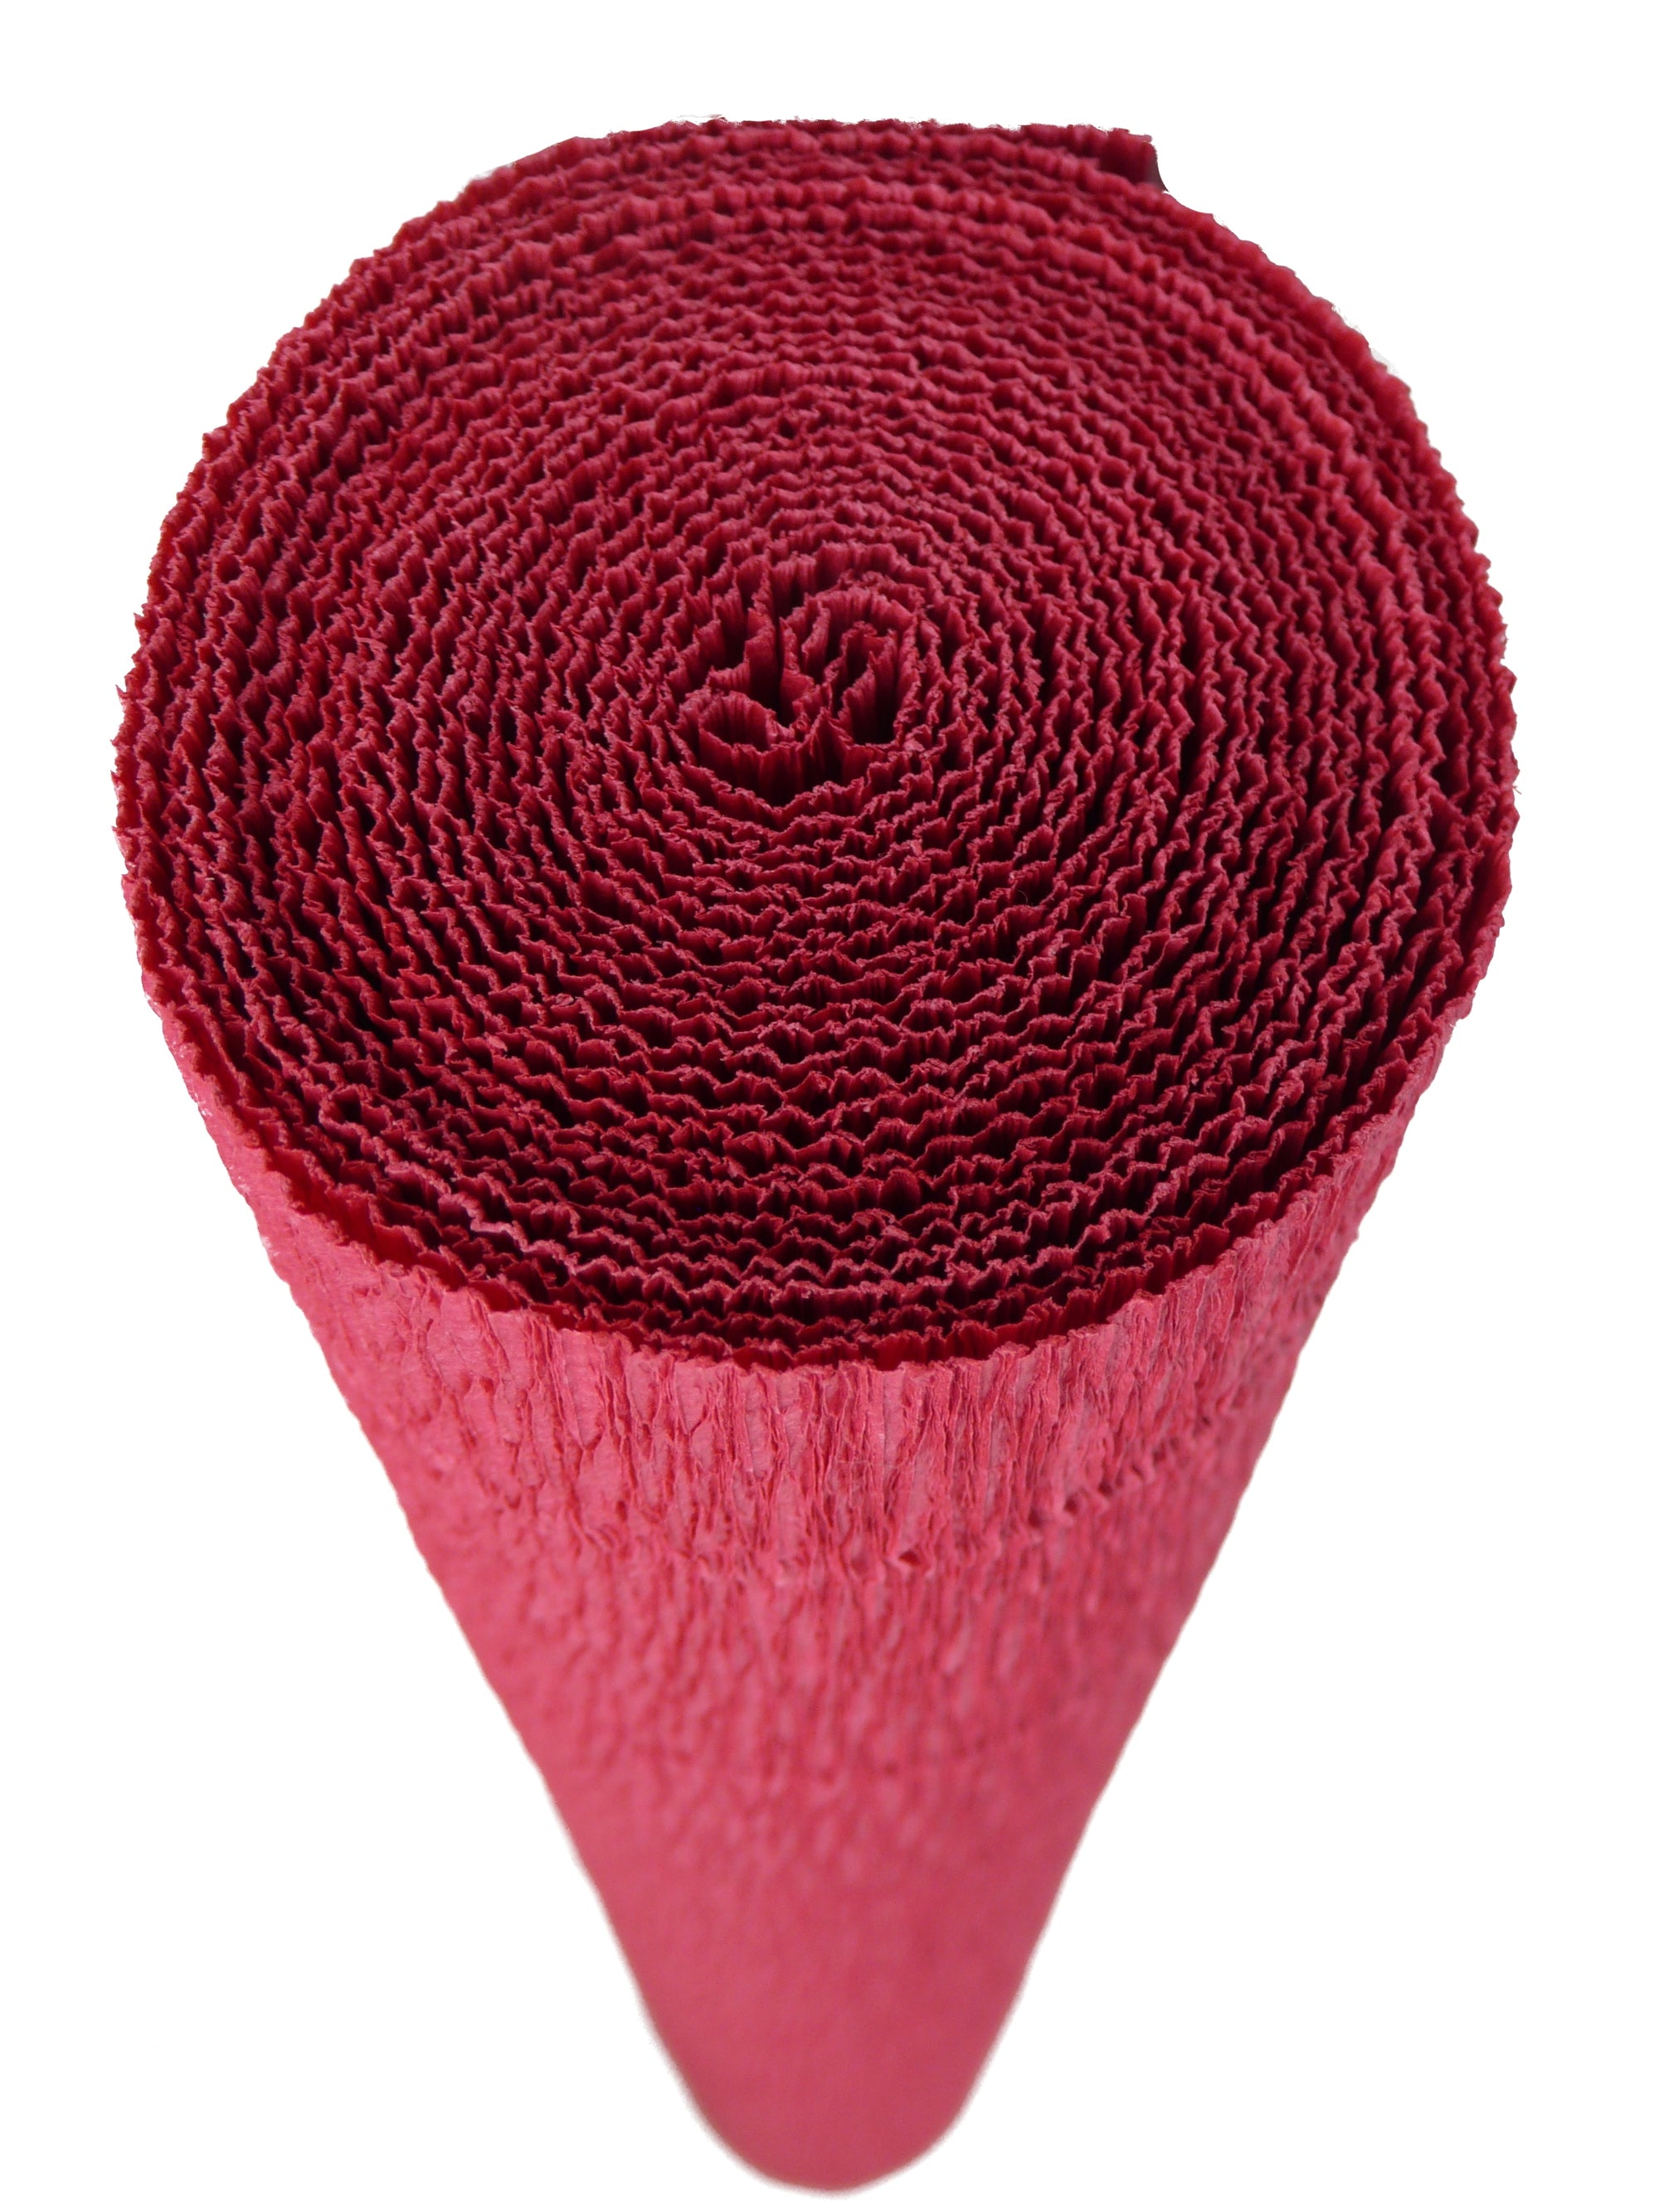 Italian Crepe Paper roll 180 gram - 17A/6 PRETTY PINKISH RUSTY RED BY TIFFANIE TURNER